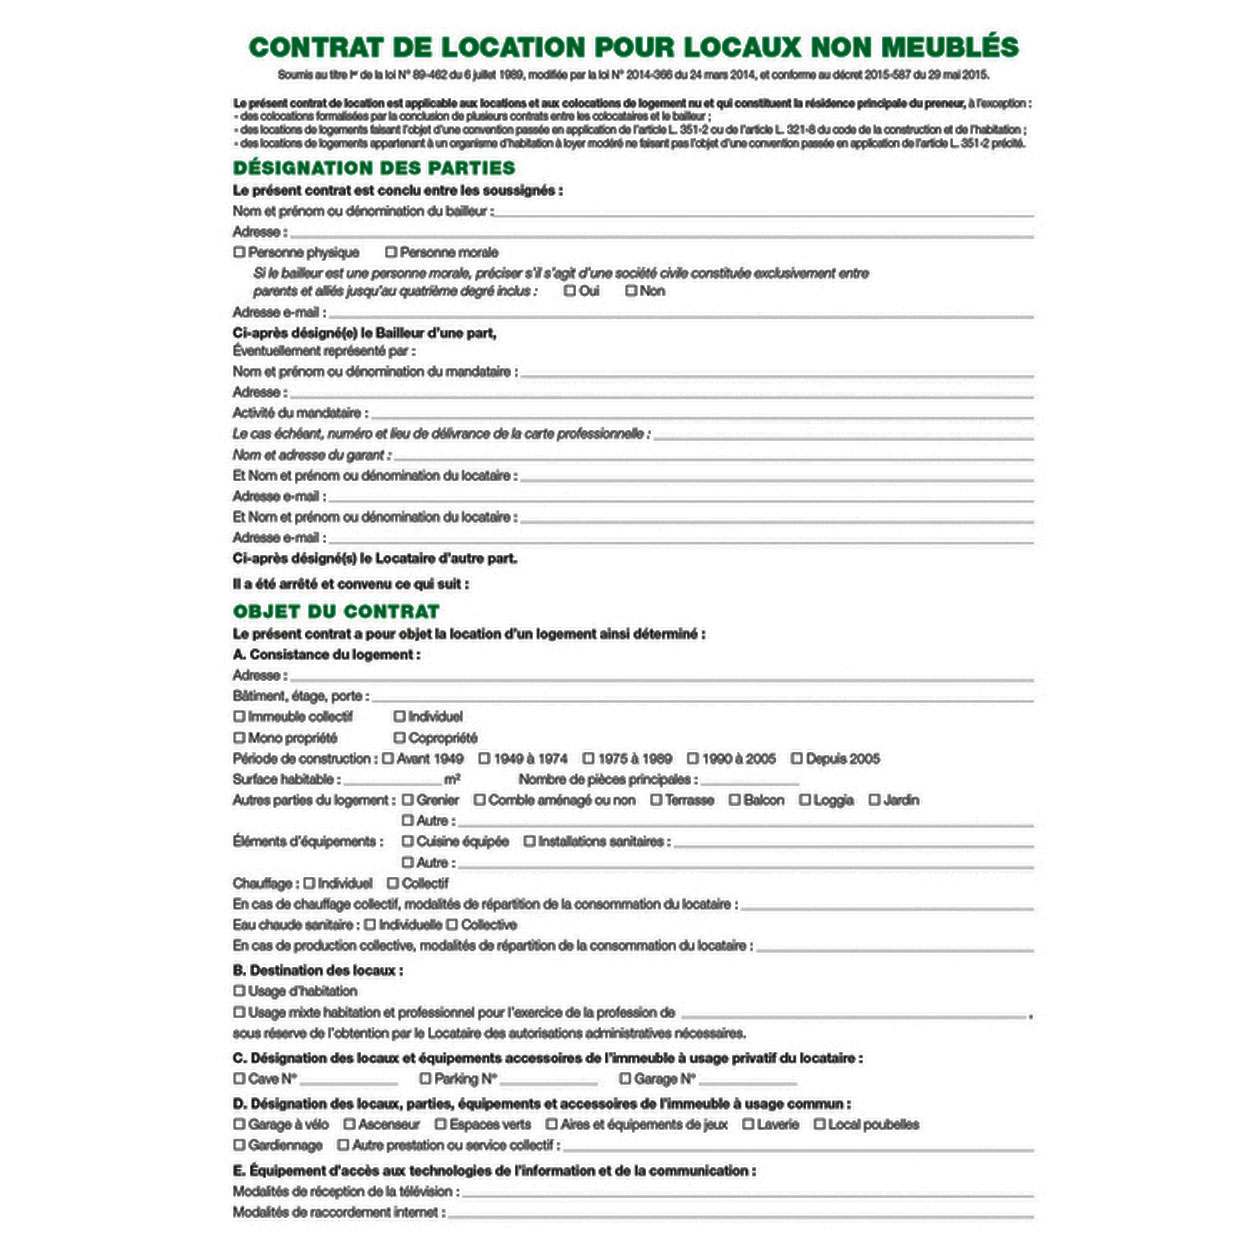 Exacompta contrat de location de locaux vacants registre - Contrat de location locaux vacants non meubles ...